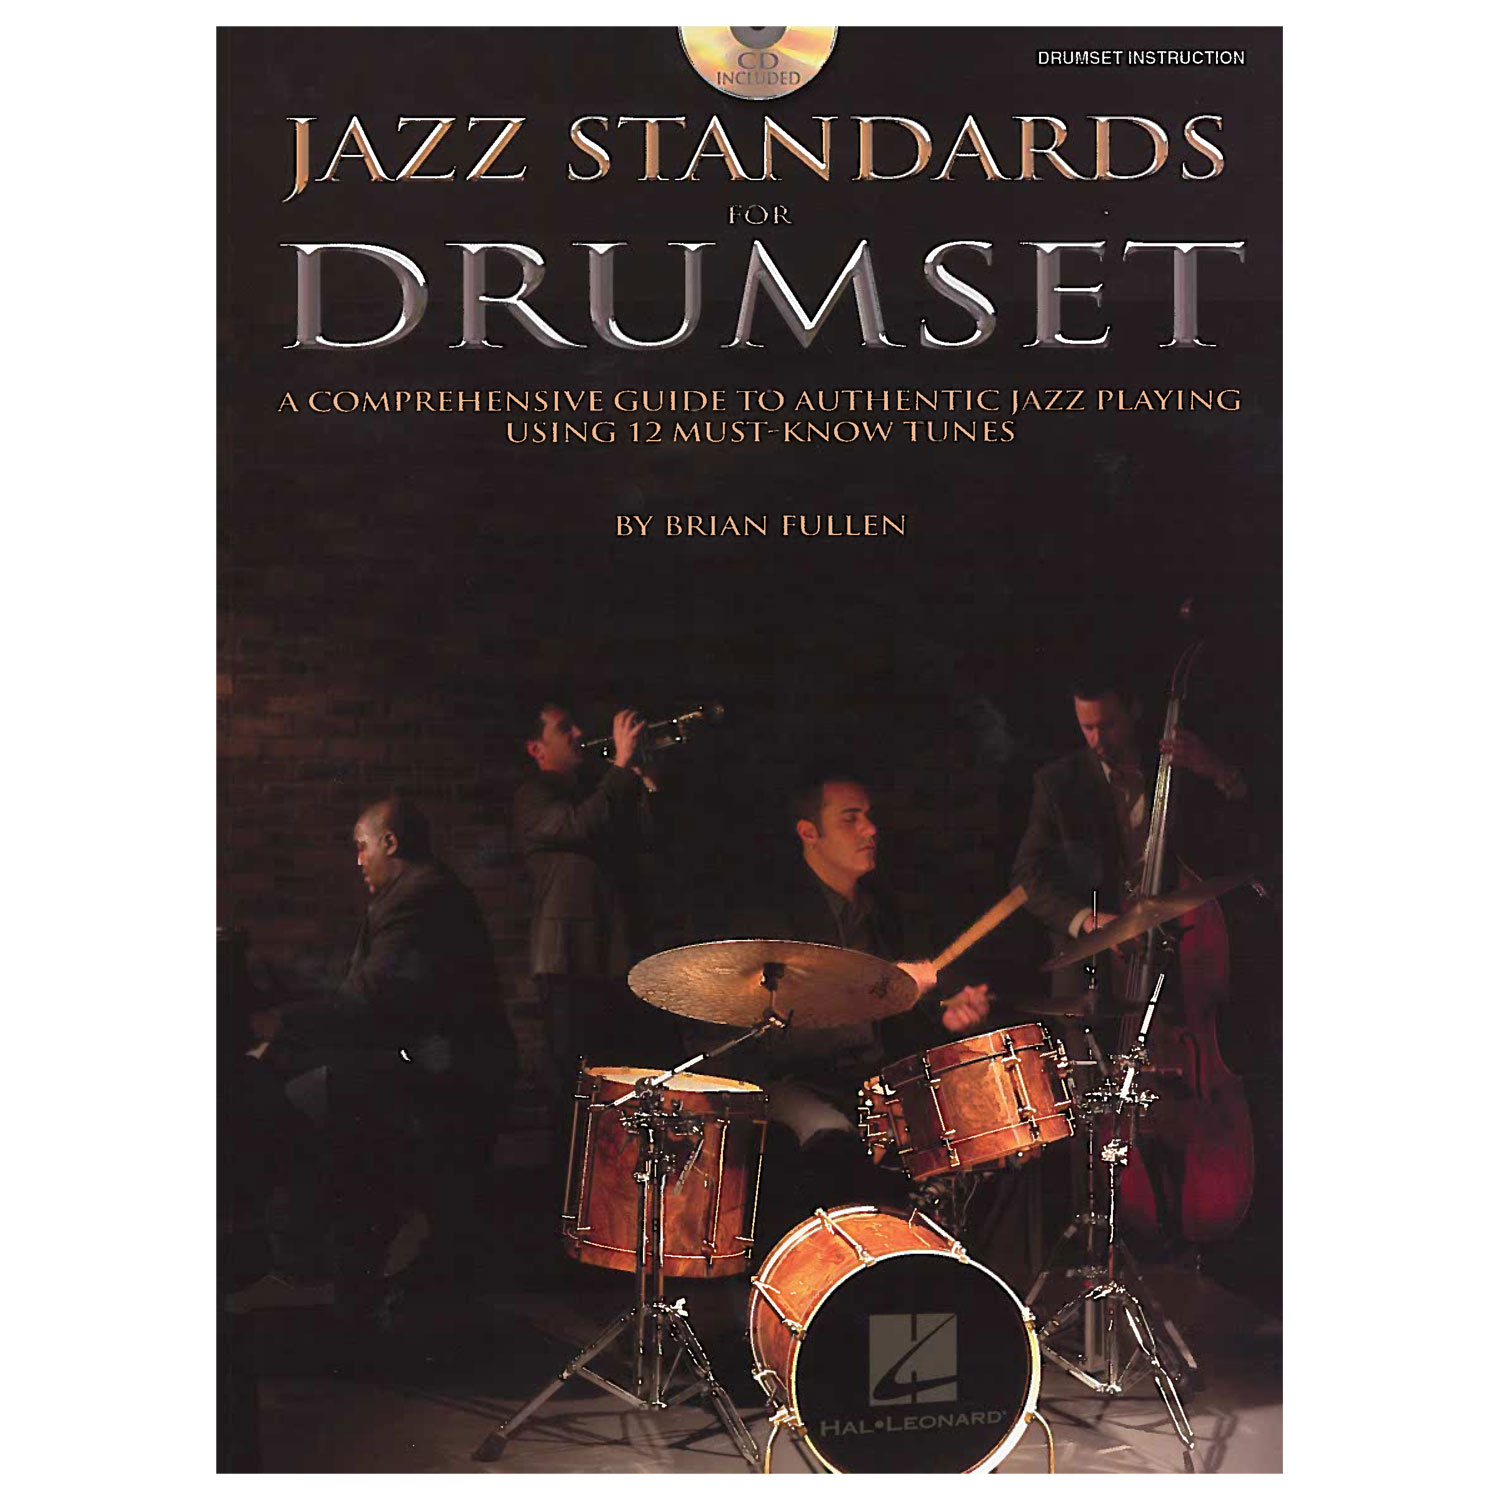 Jazz Standards for Drumset by Brian Fullen